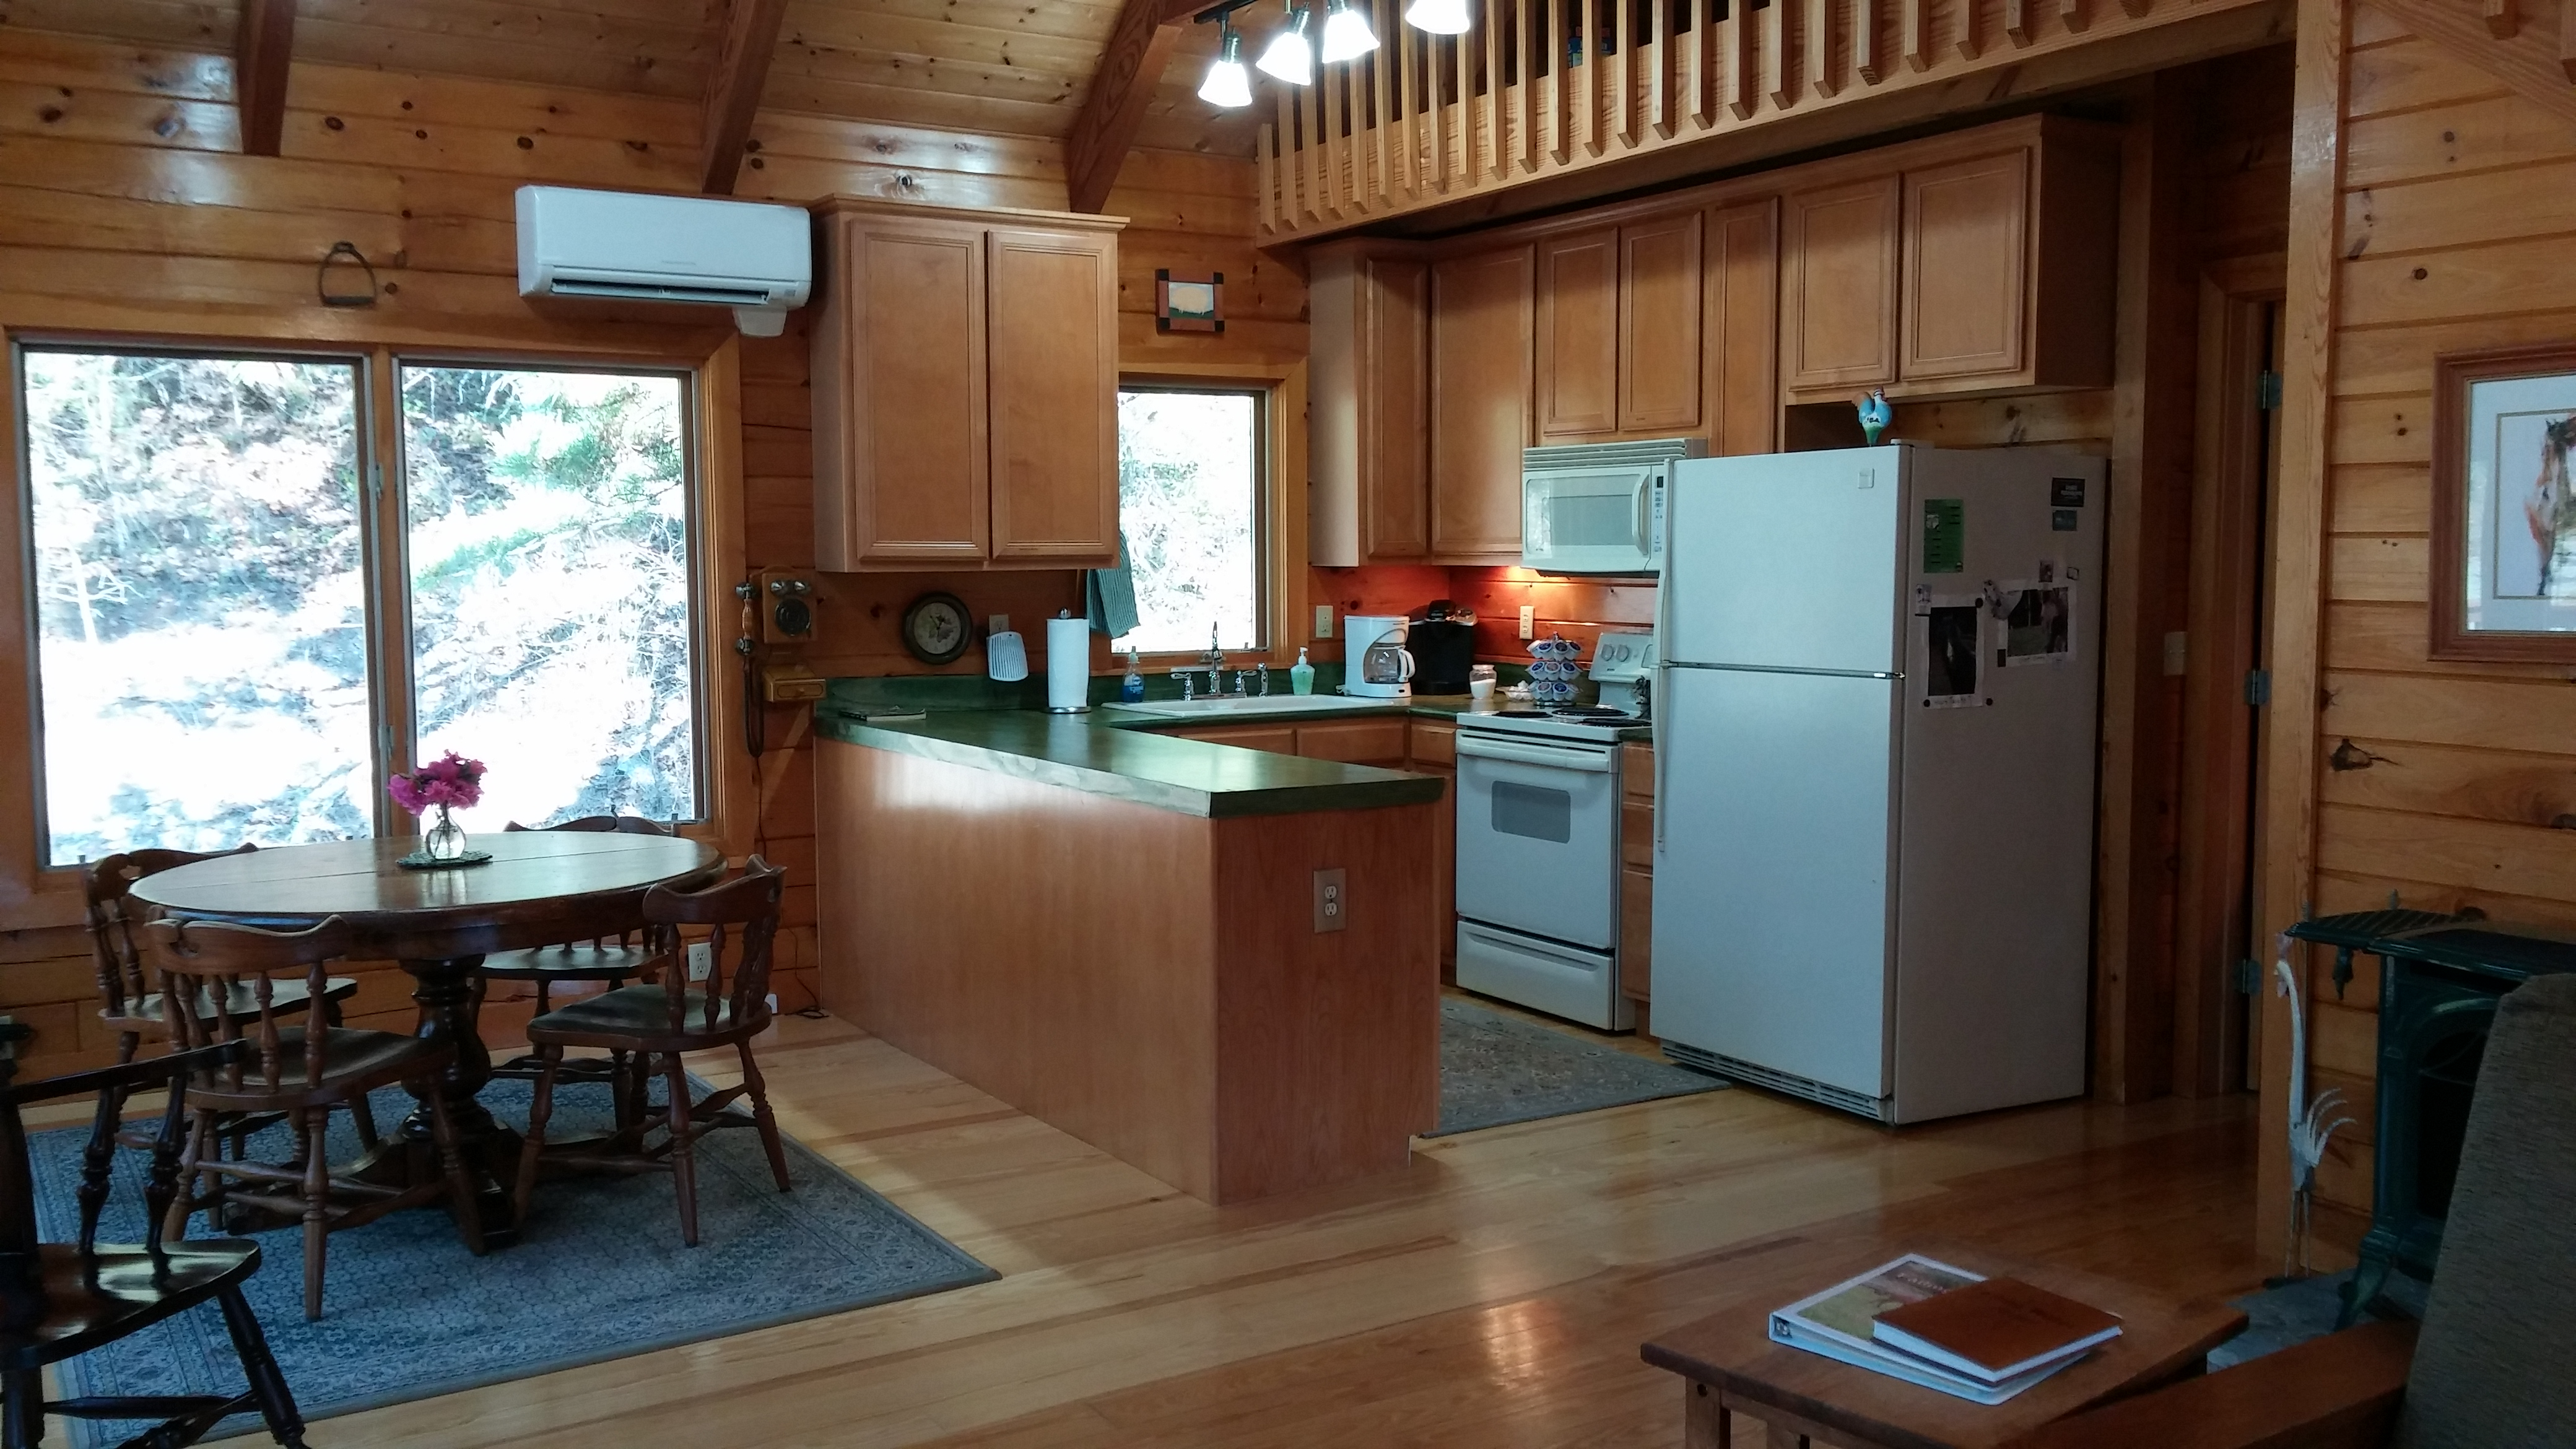 Falling Water Farm - cabin's kitchen